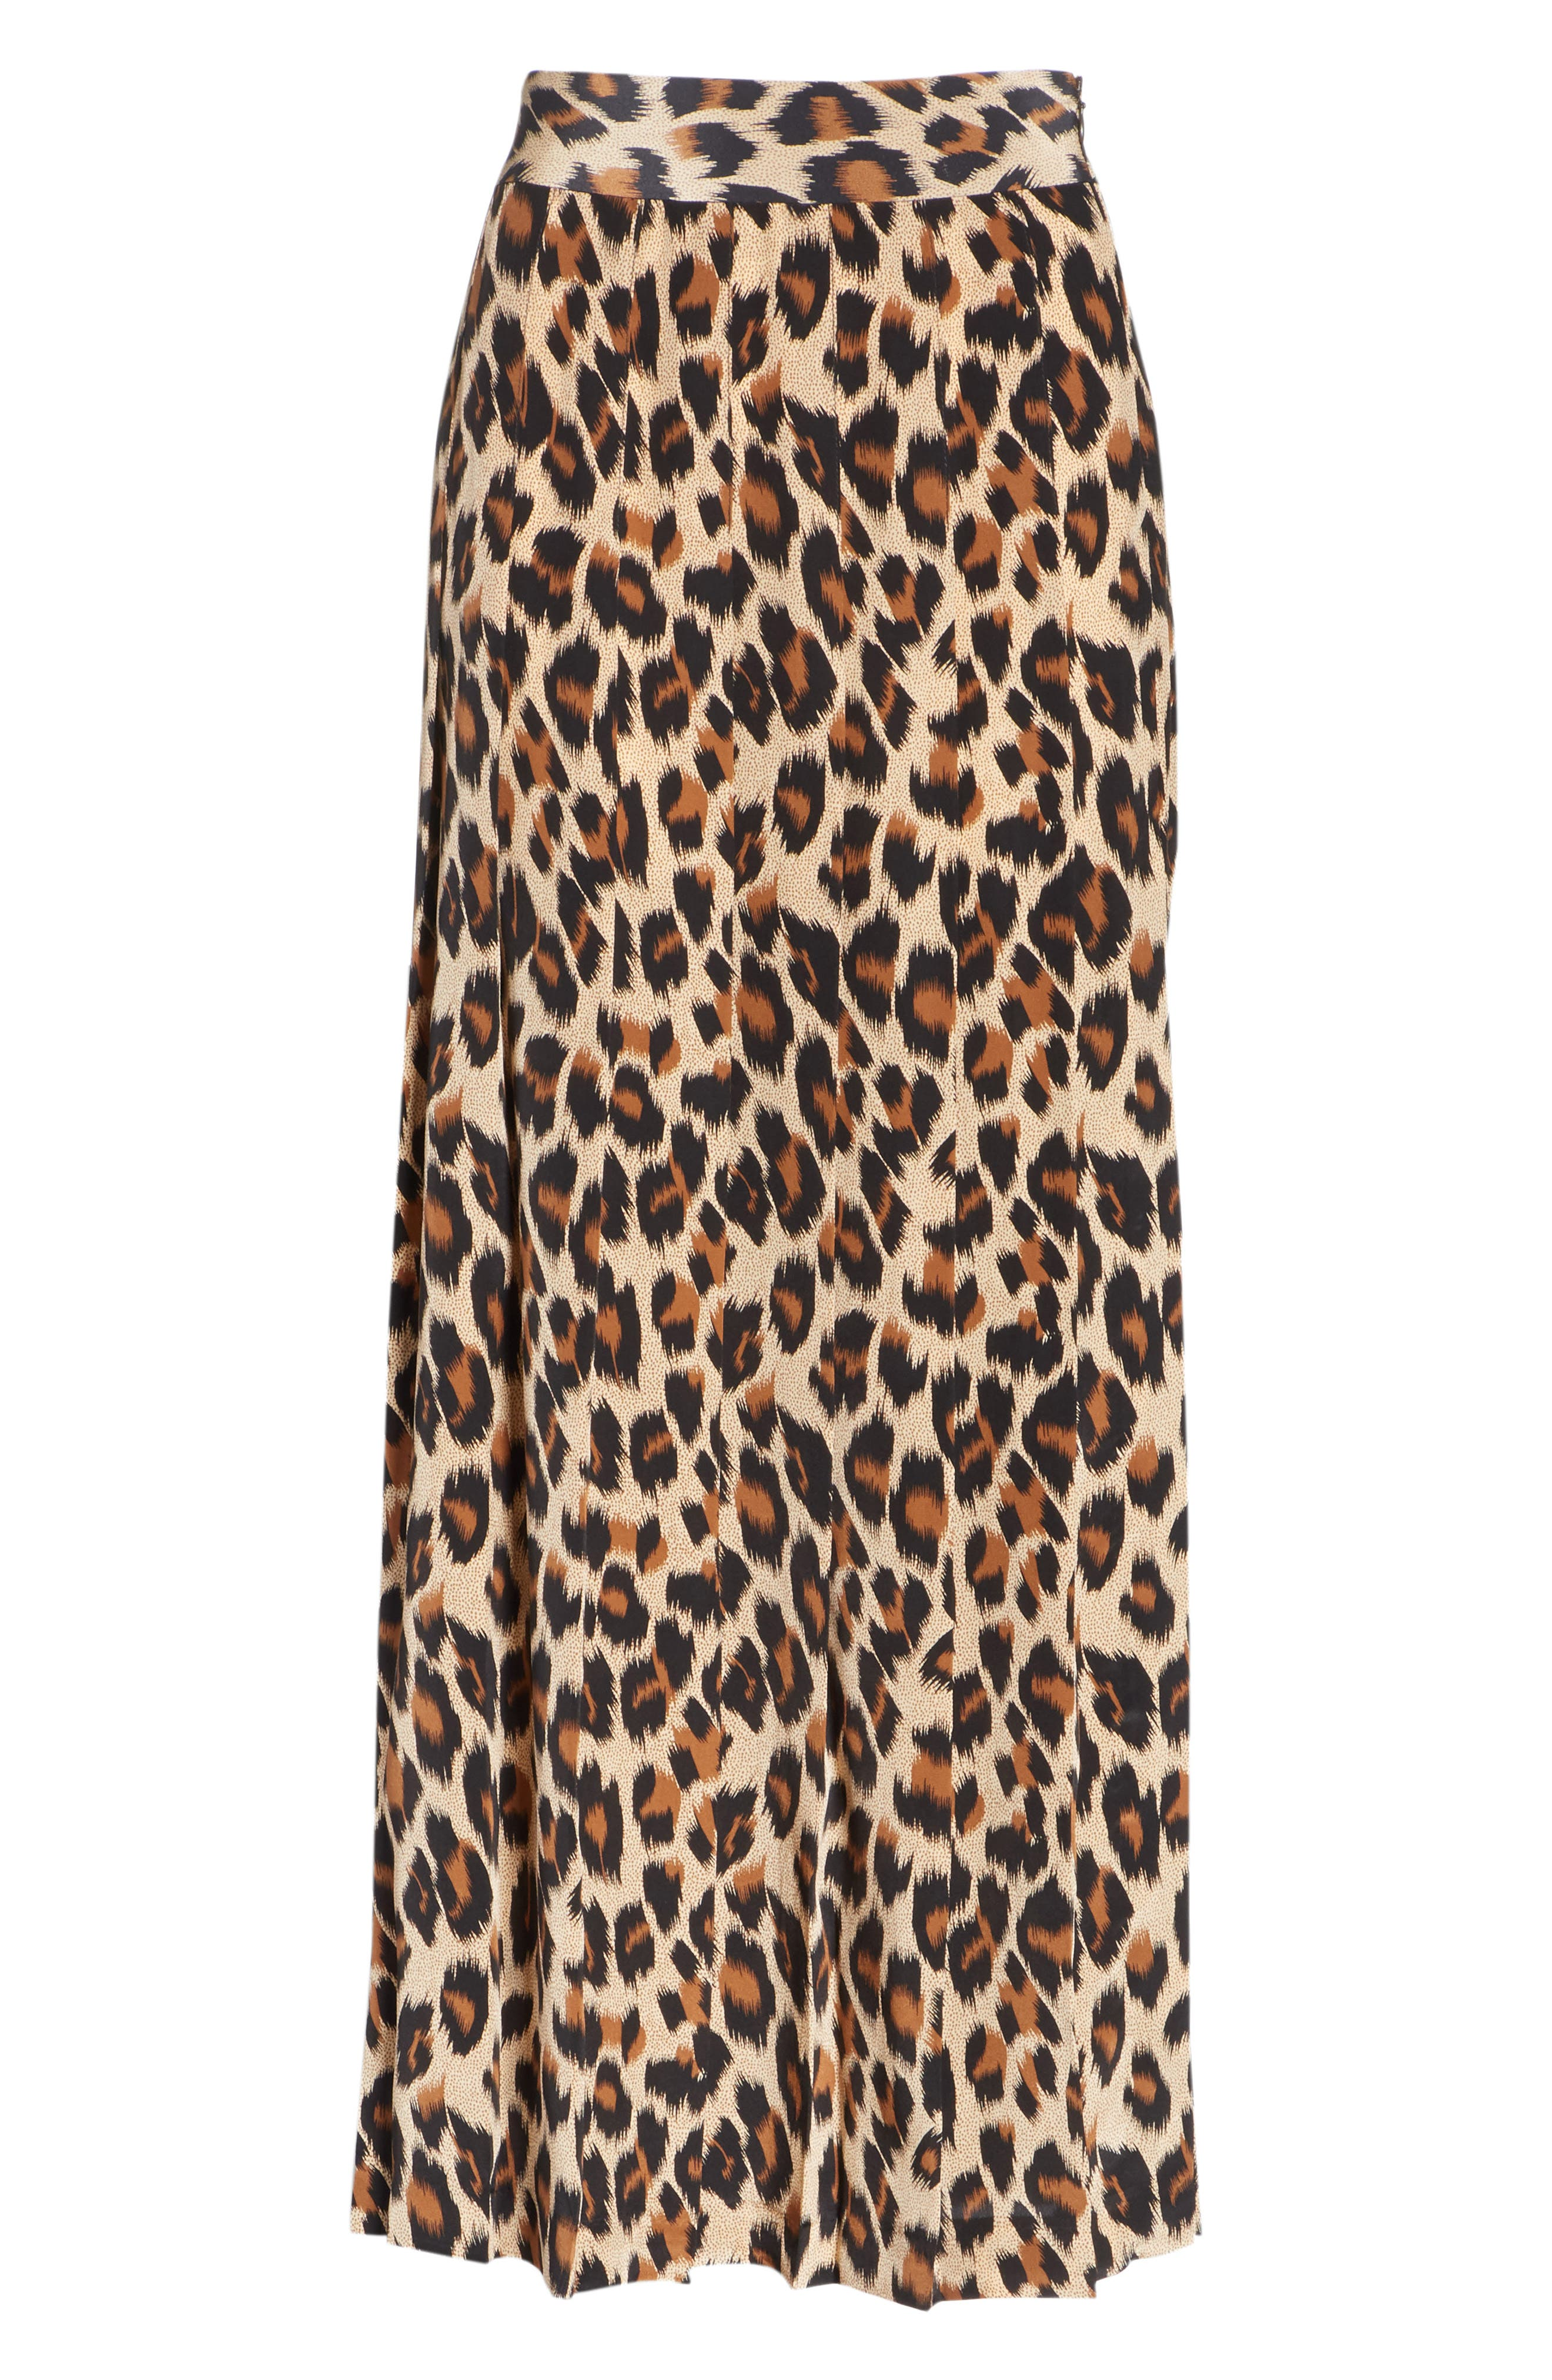 Leopard Print Pleated Silk Skirt,                             Alternate thumbnail 6, color,                             LEOPARD